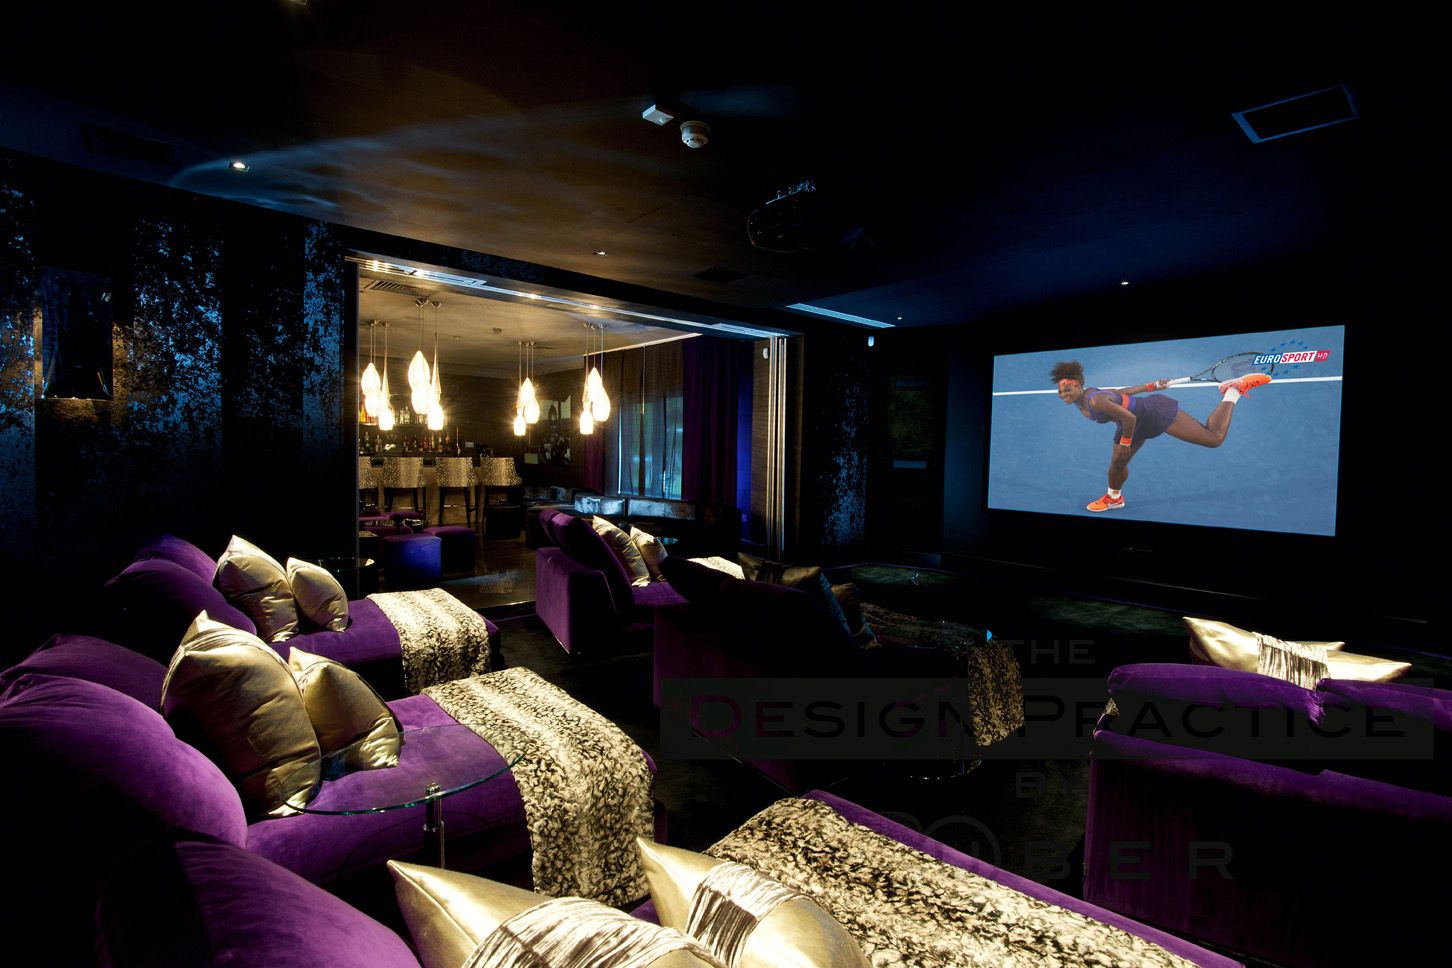 Home theater design company.